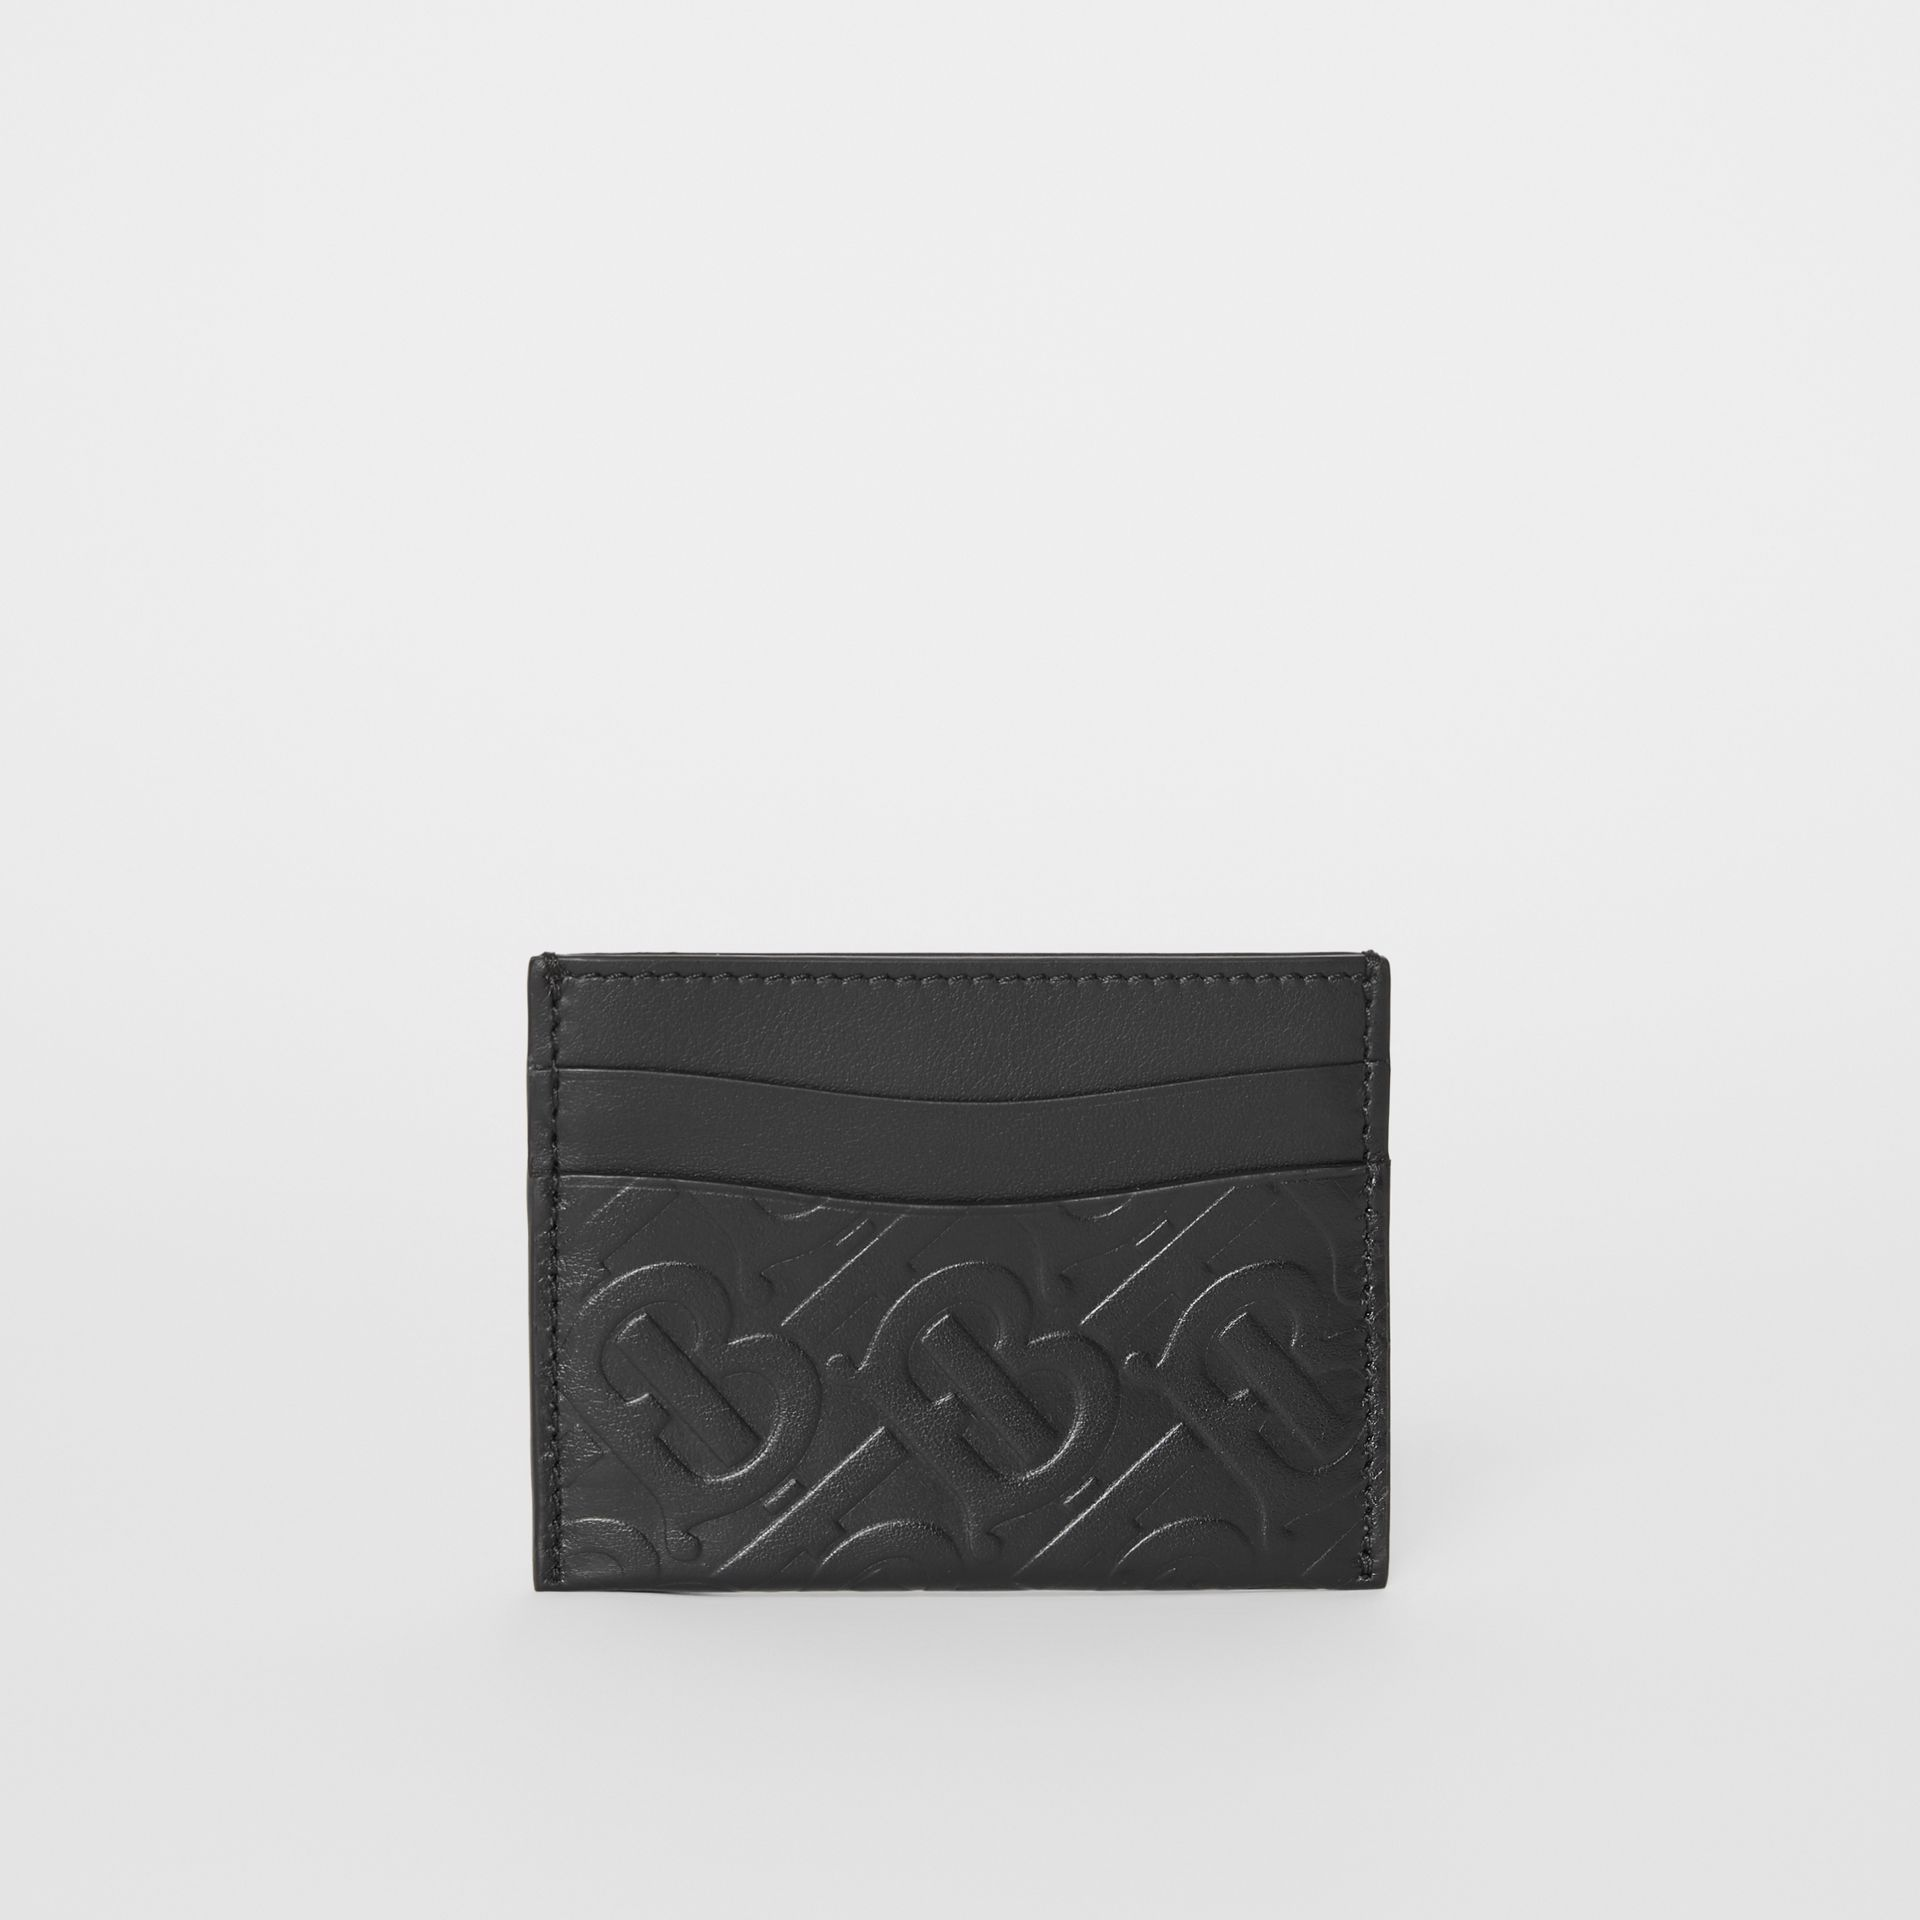 Porte-cartes en cuir Monogram (Noir) - Femme | Burberry - photo de la galerie 3